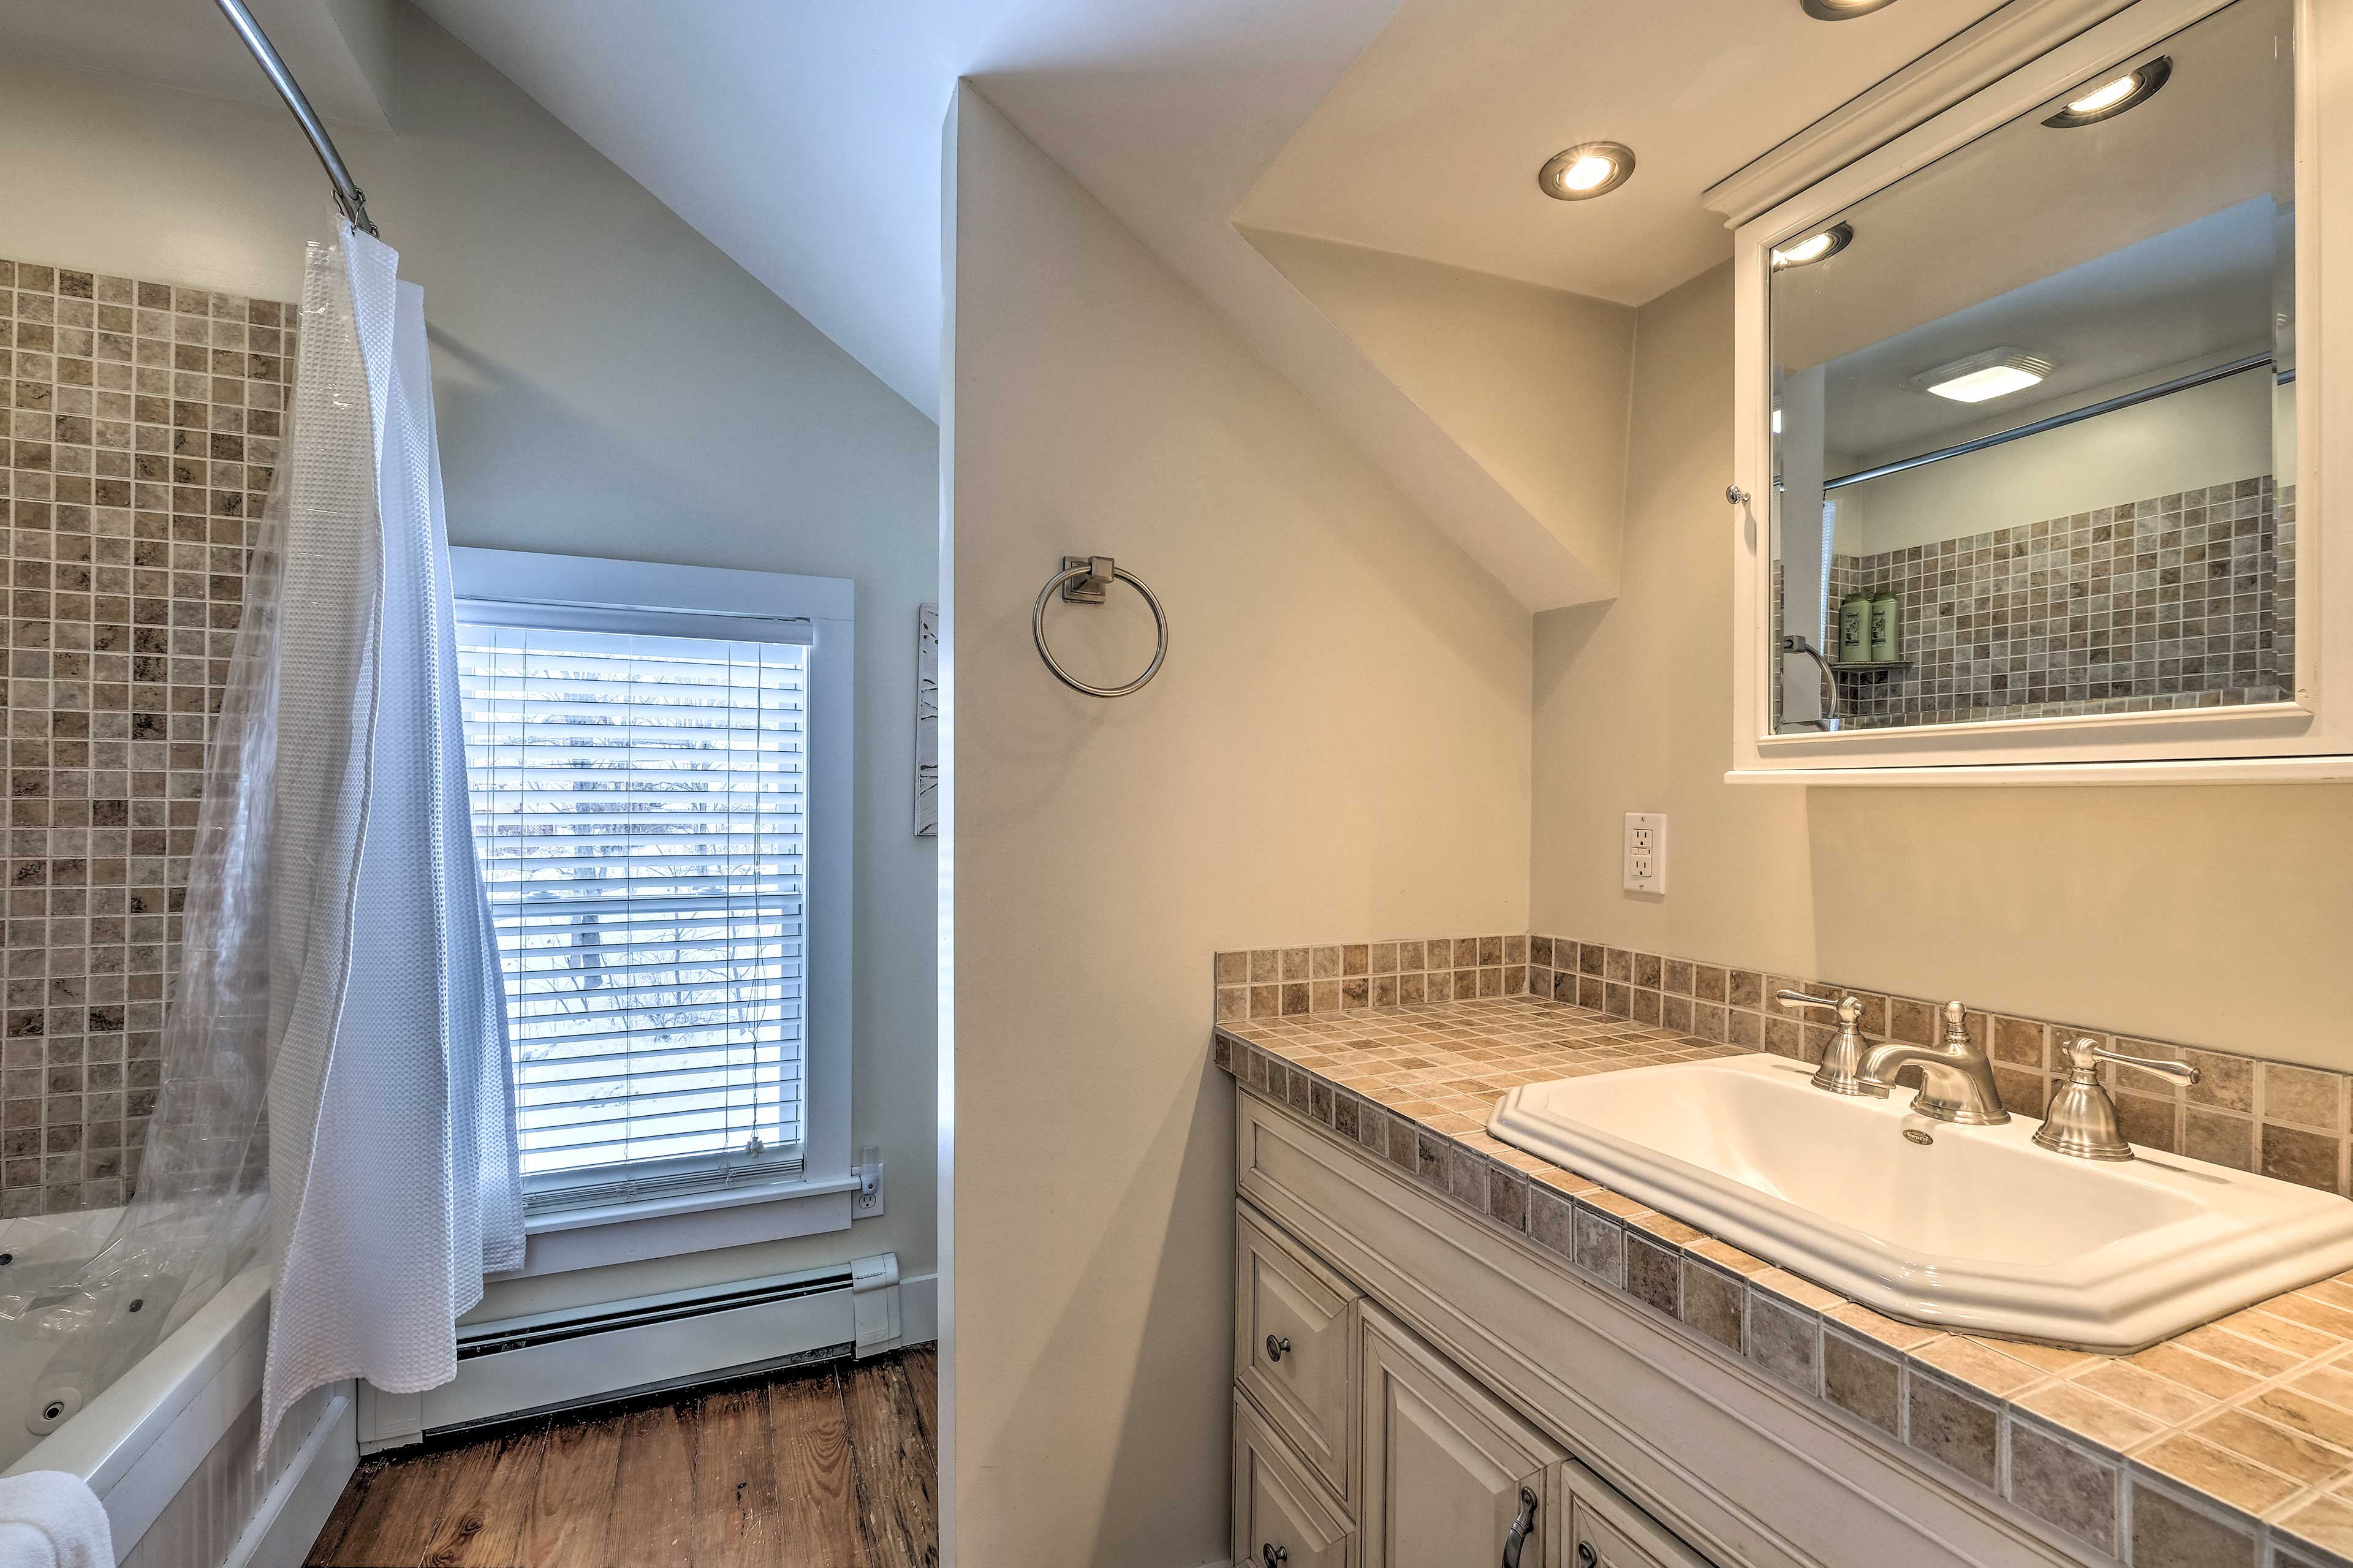 The master bathroom includes a spacious vanity and shower/tub combo.